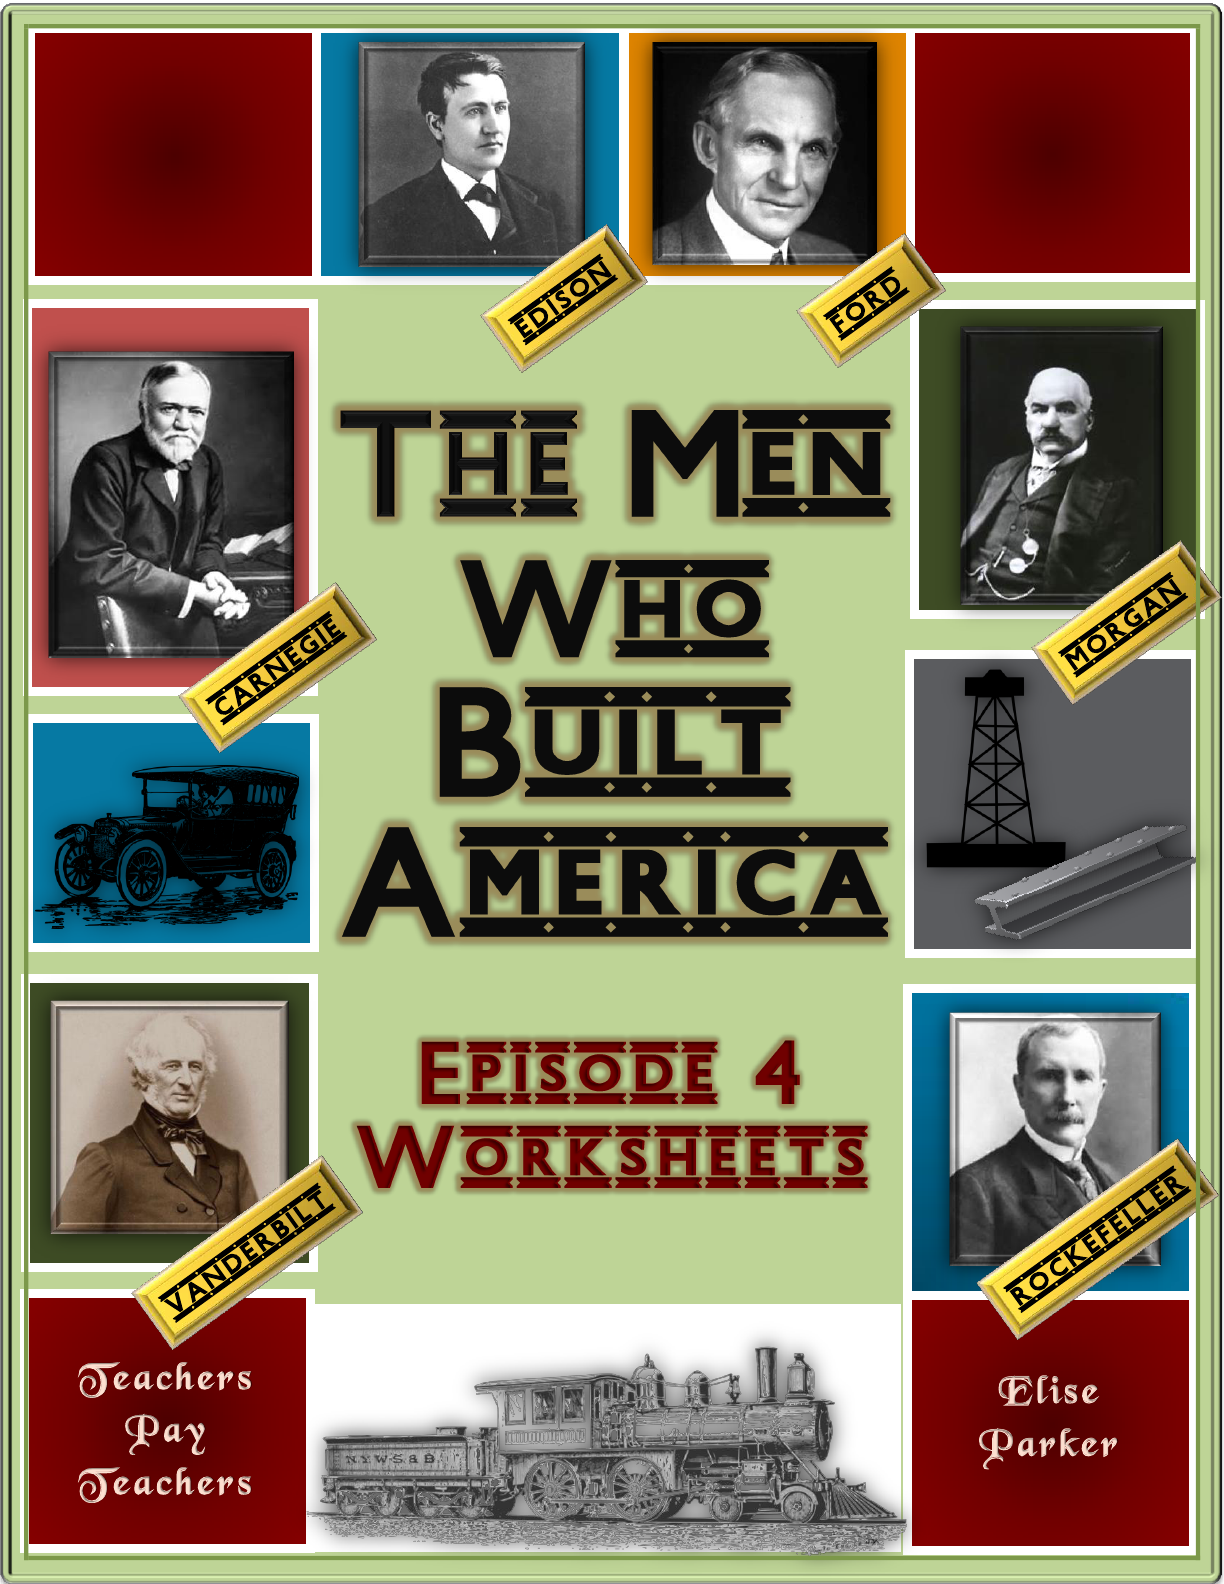 worksheet The Men Who Built America Worksheet the men who built america episode 4 worksheets standard oil help students learn more as they watch this engaging history